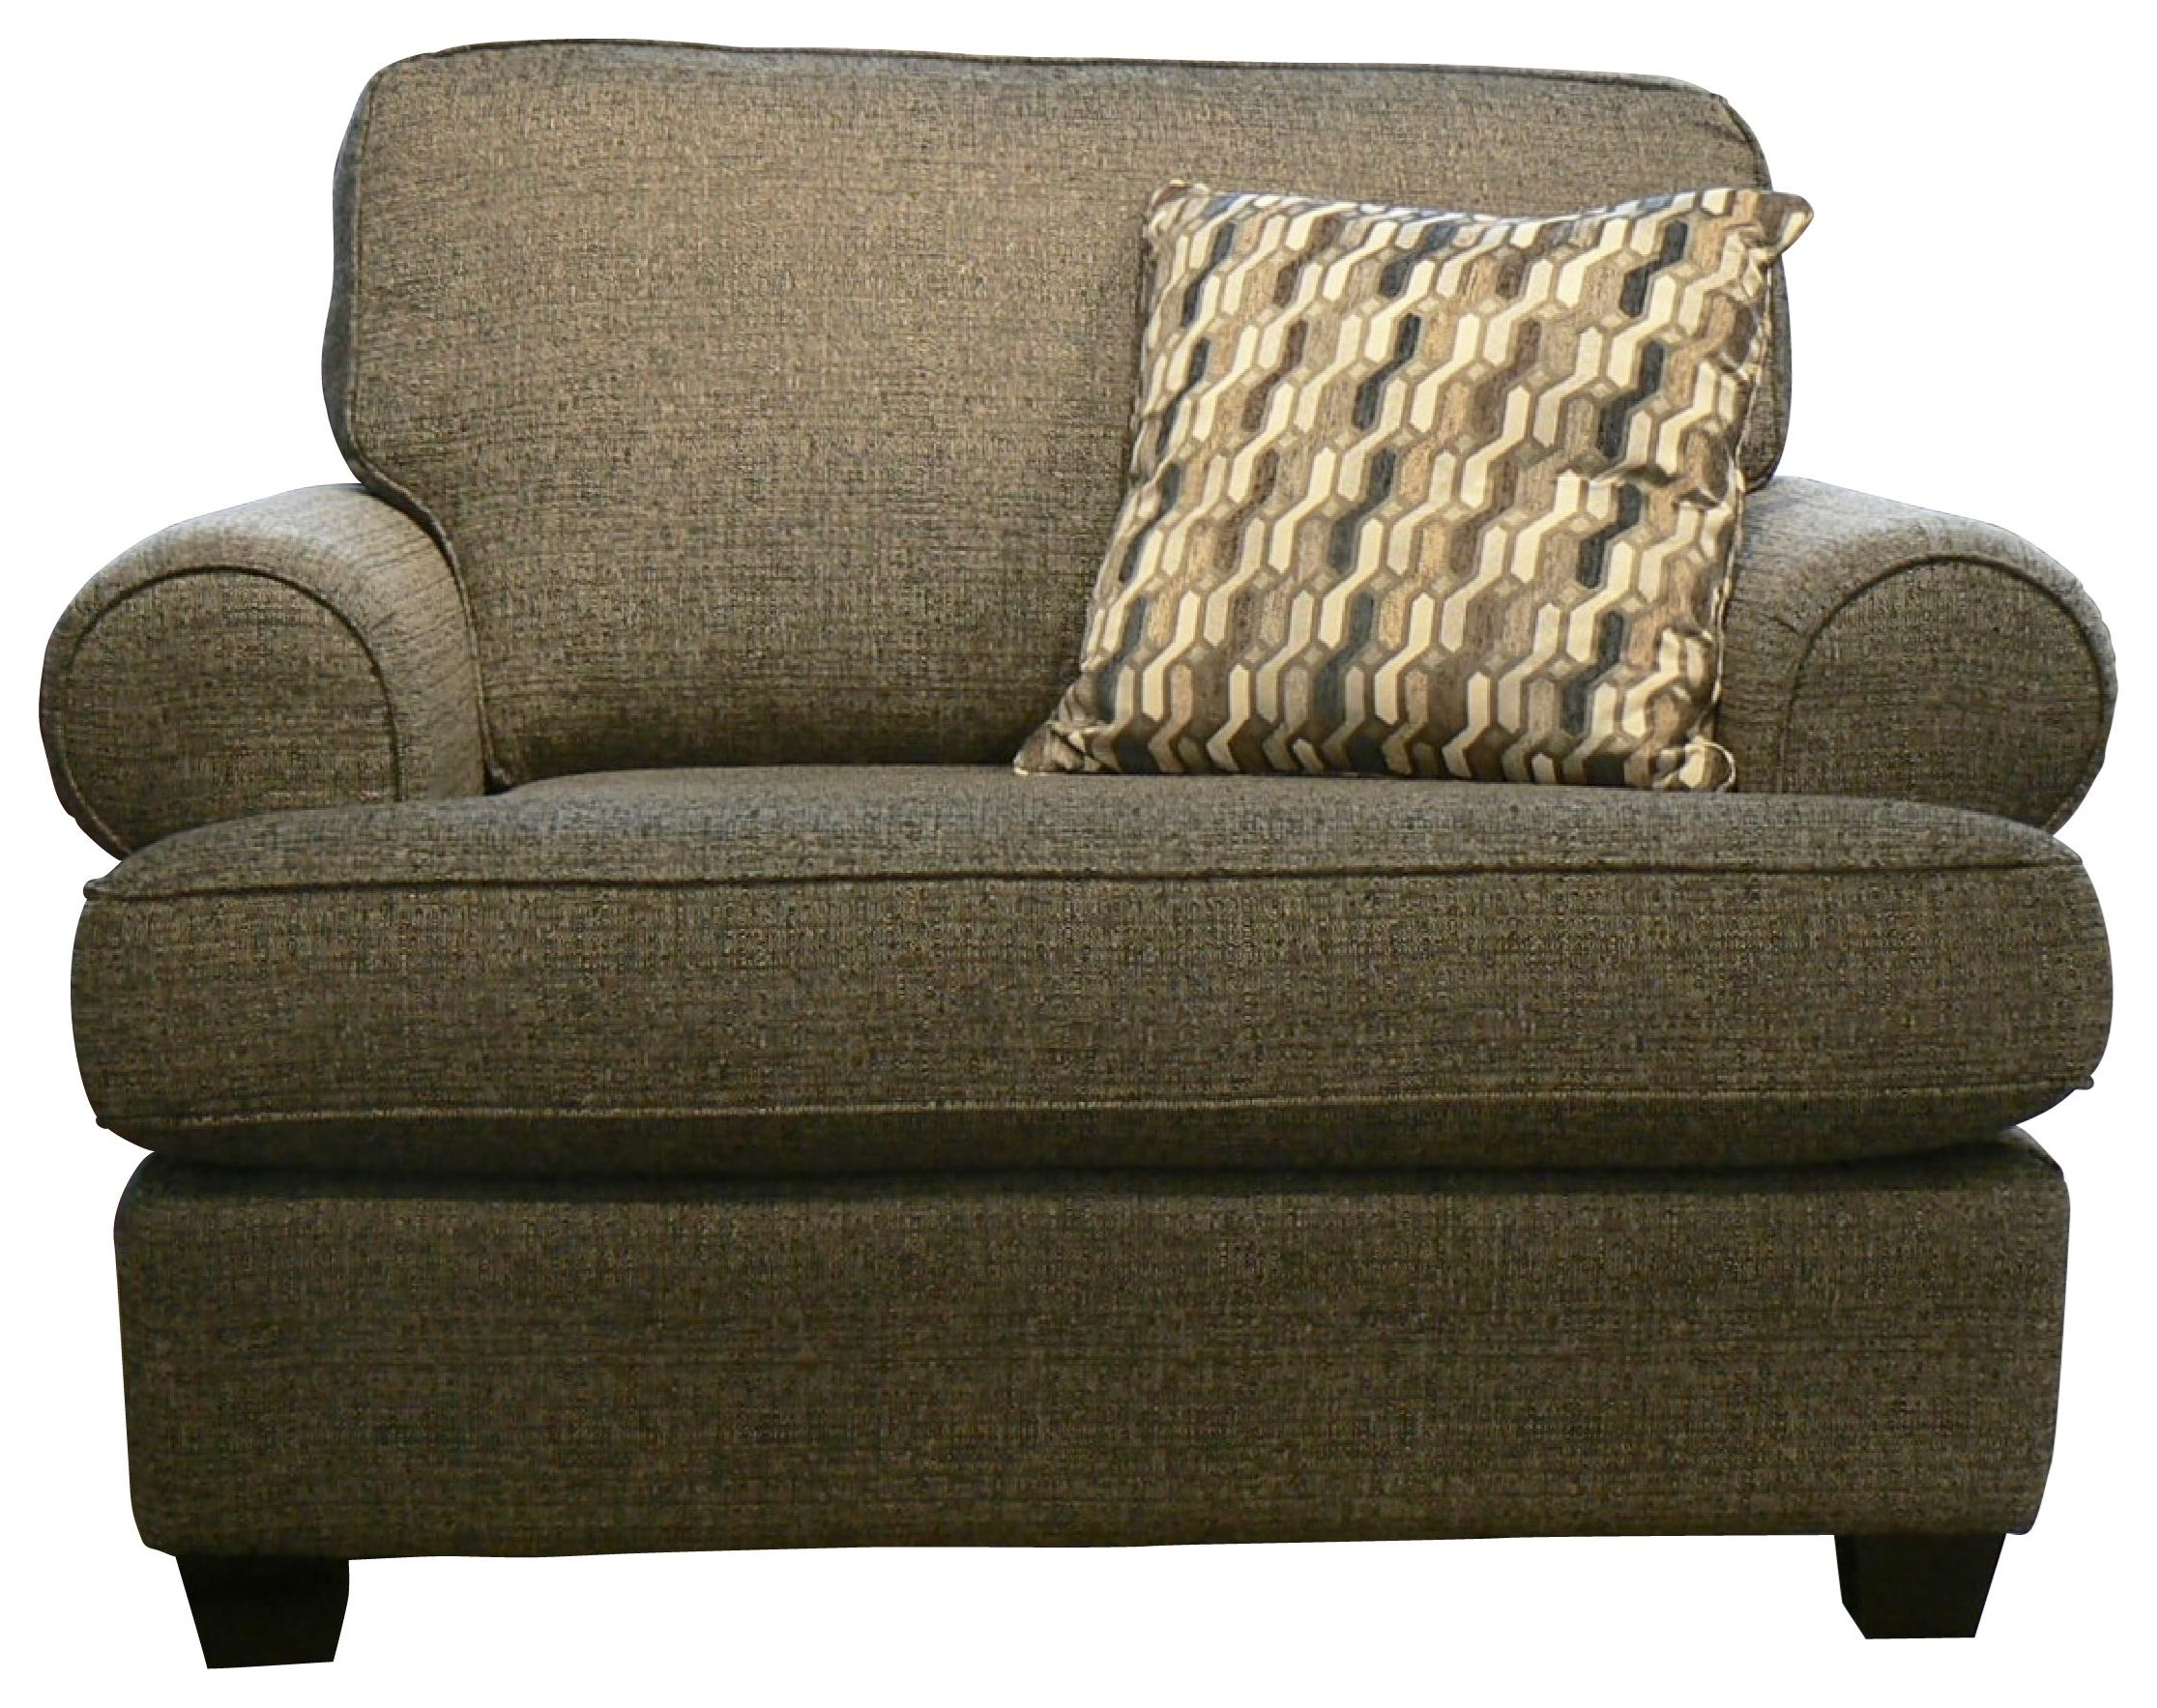 Daly Chair and a Half by Taelor Designs at Bennett's Furniture and Mattresses